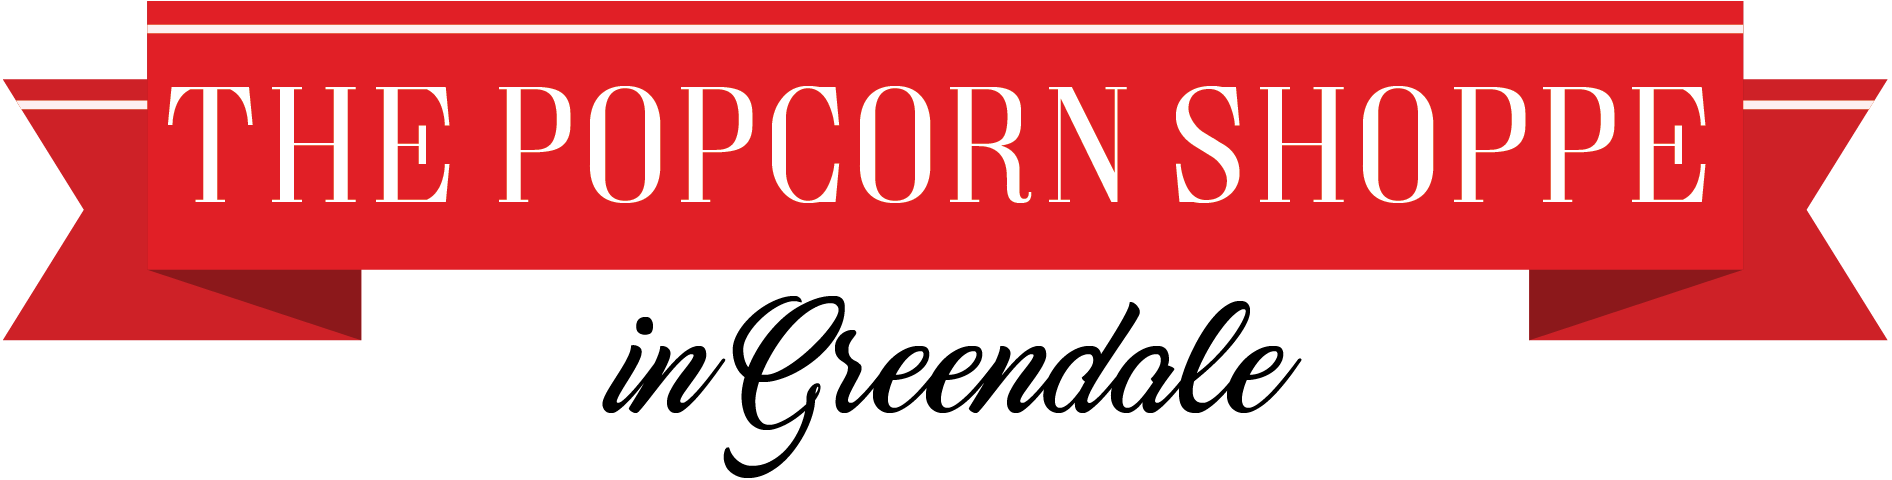 Give-Back-Wisconsin-The-Popcorn-Shoppe-In-Greendale